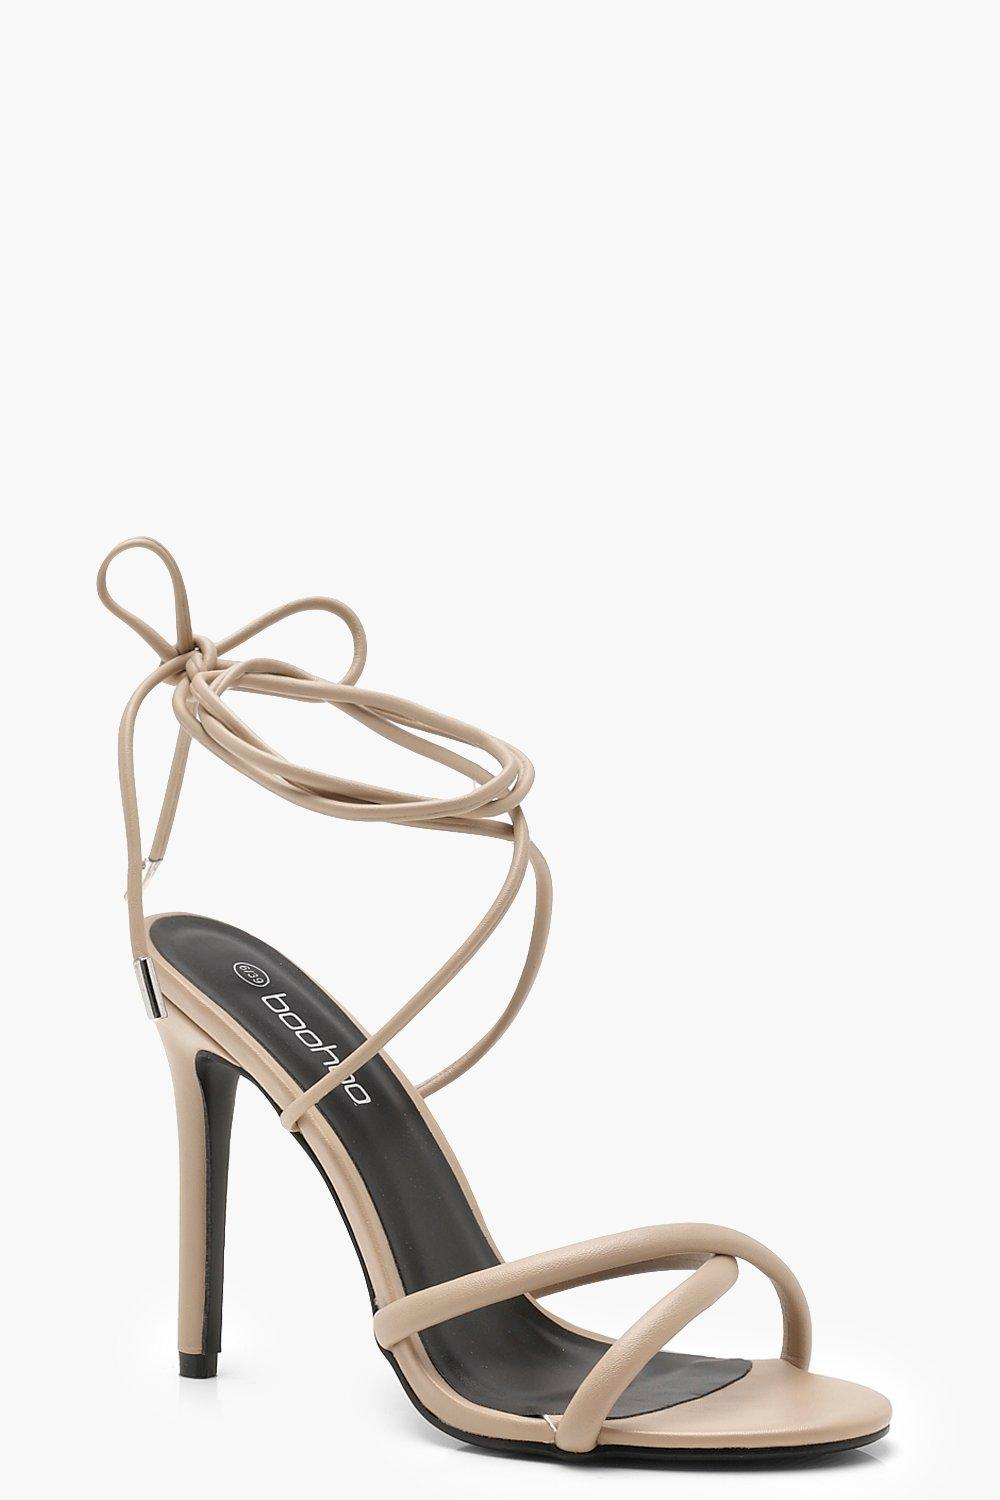 760bffe2ea8b Womens Nude Cross Strap Wrap Ankle Heels. Hover to zoom